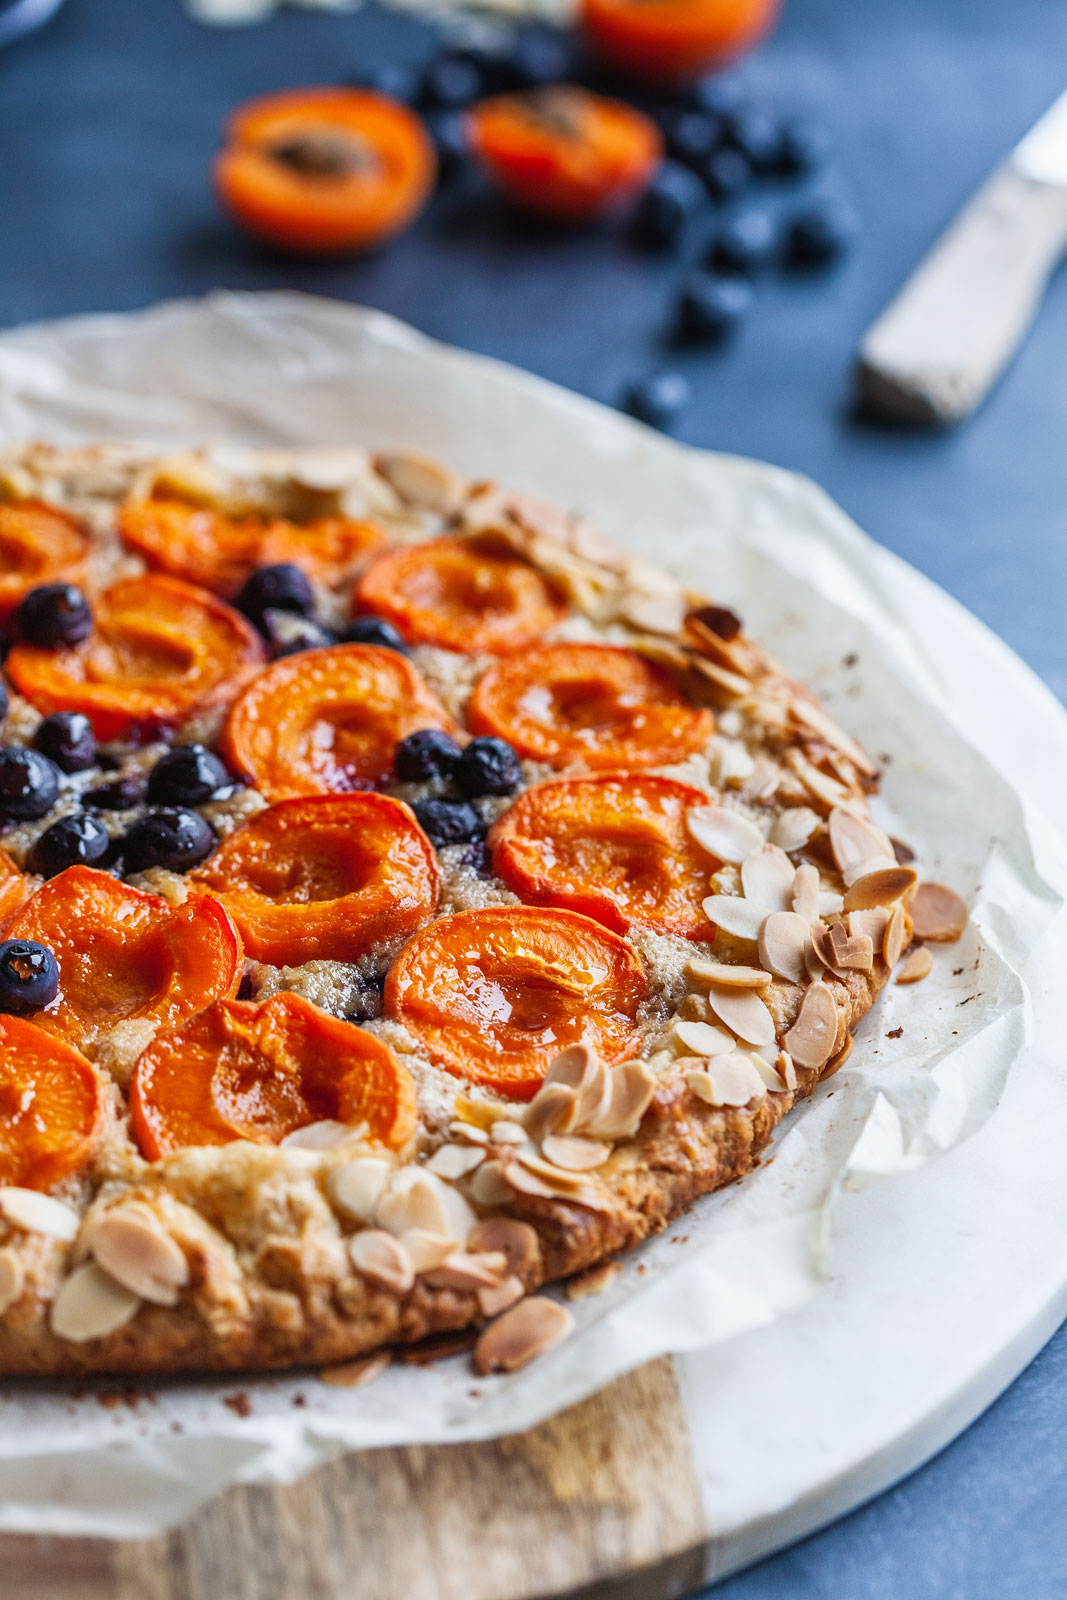 Apricot Blueberry and Almond Cream Crostata